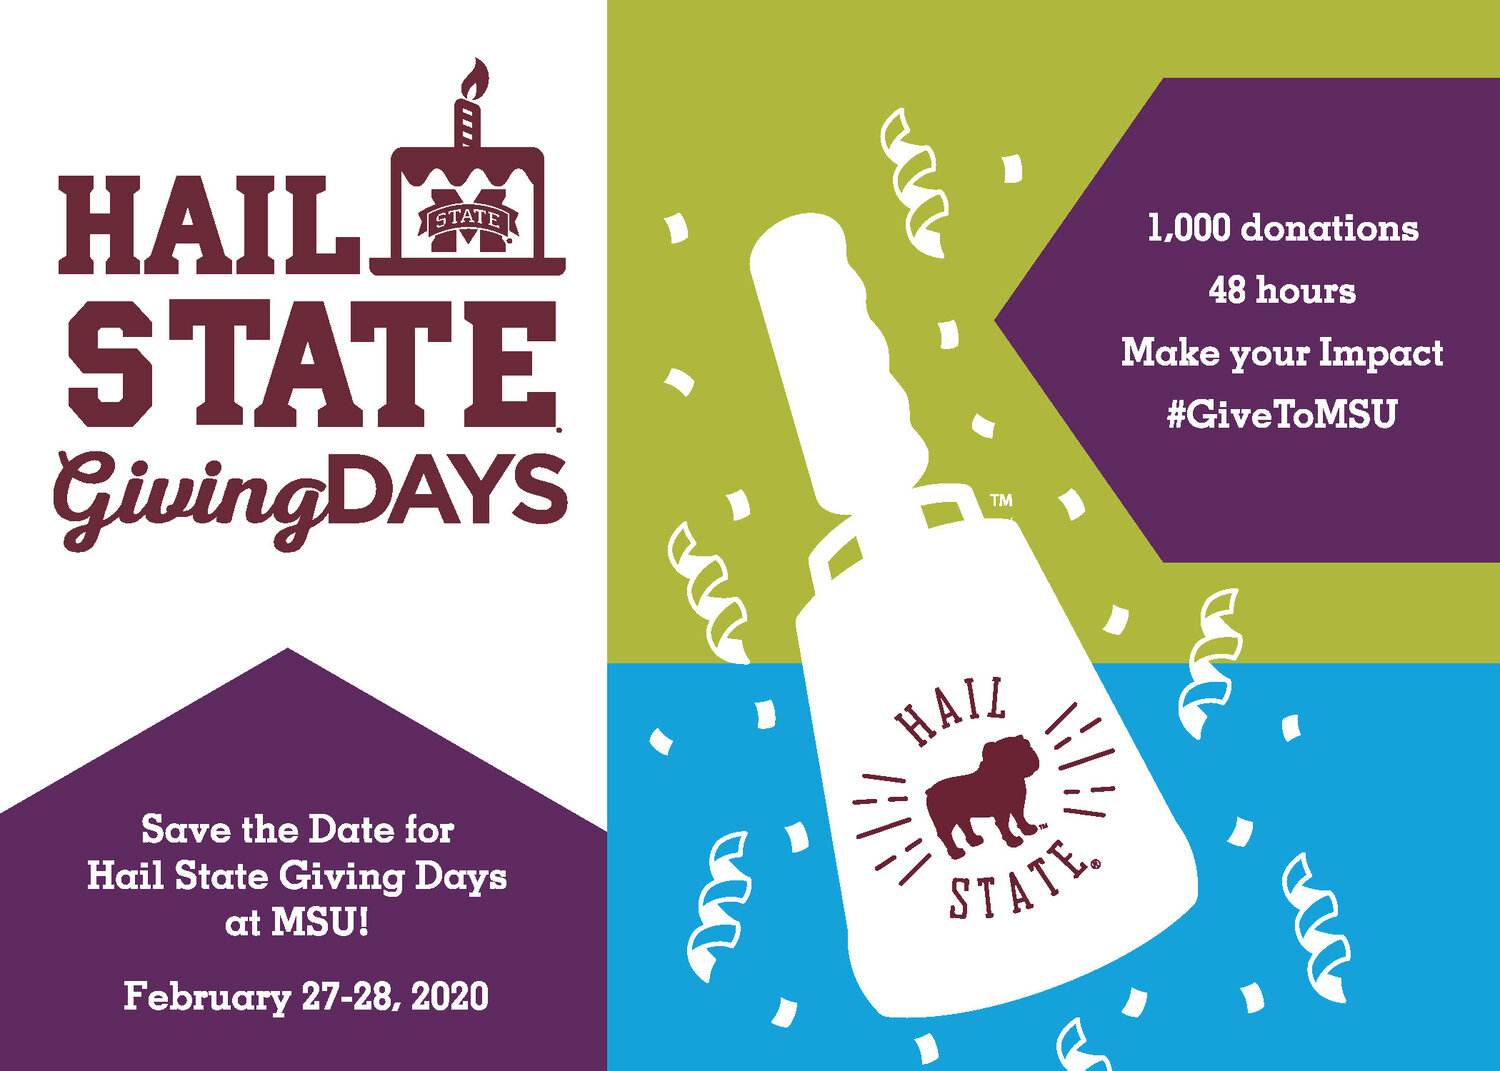 Promotional graphic for Hail State Giving Days